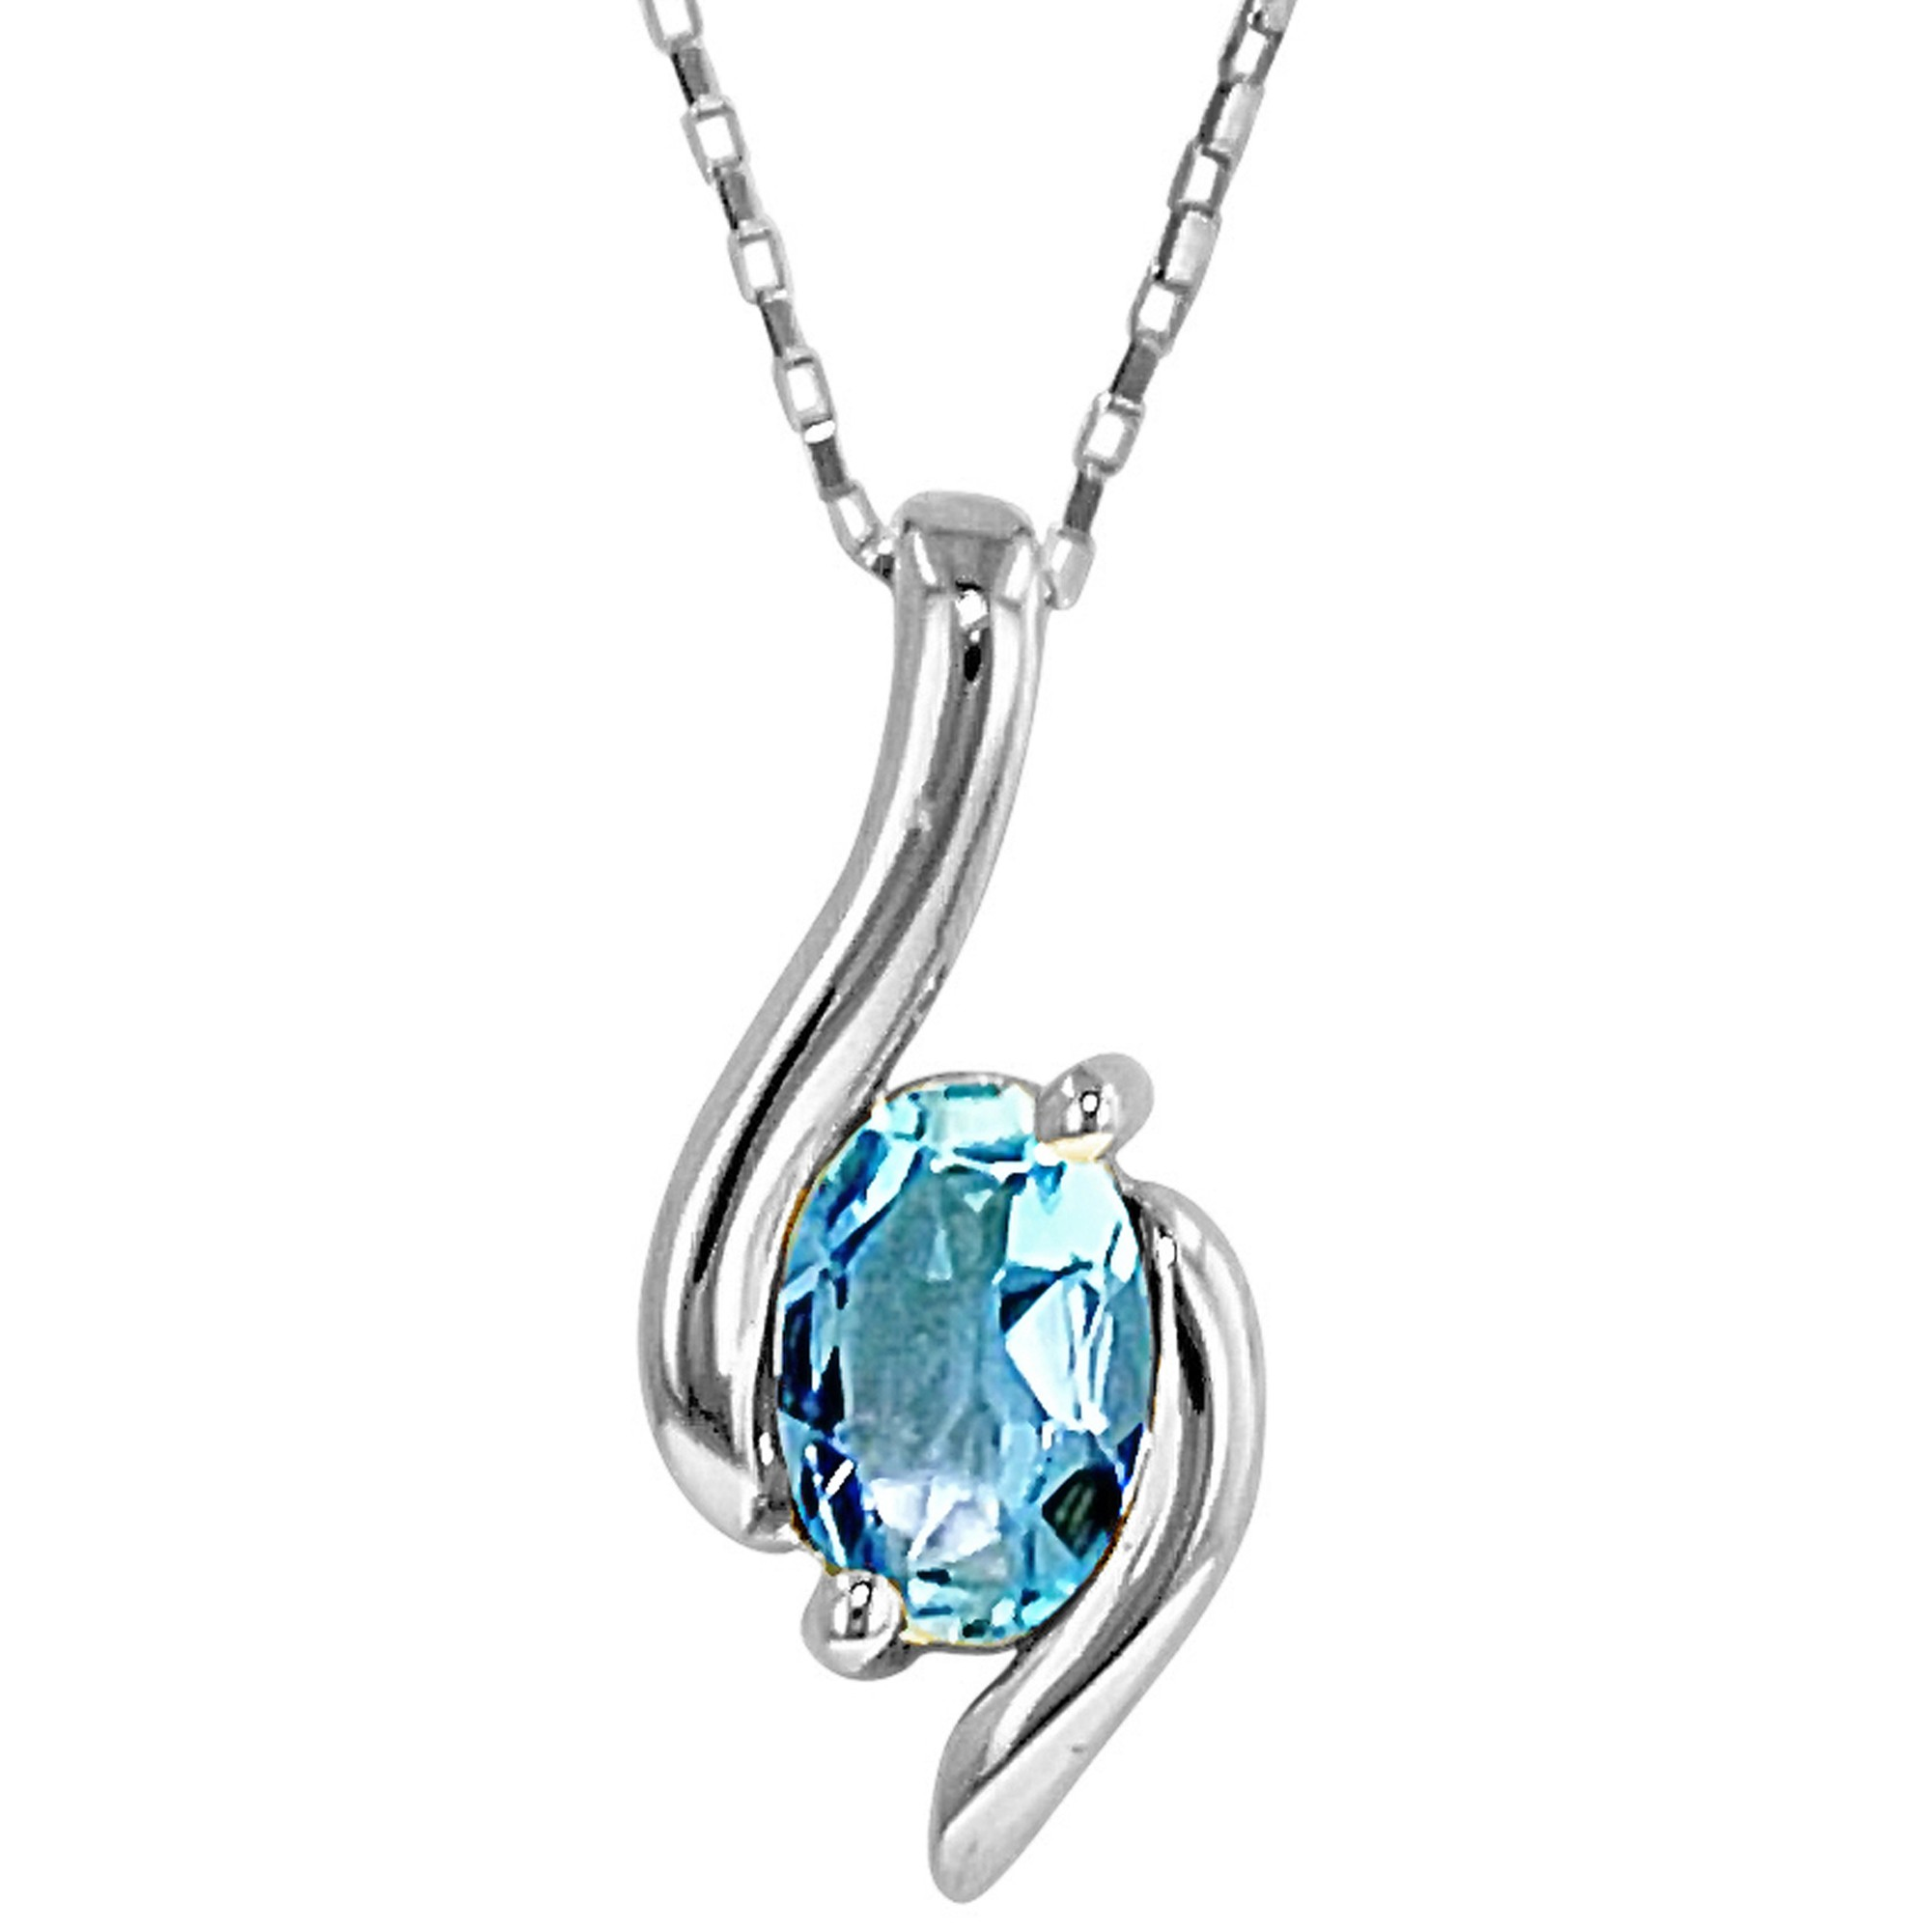 aquamarine necklace in 10kt white gold PPCZQBN